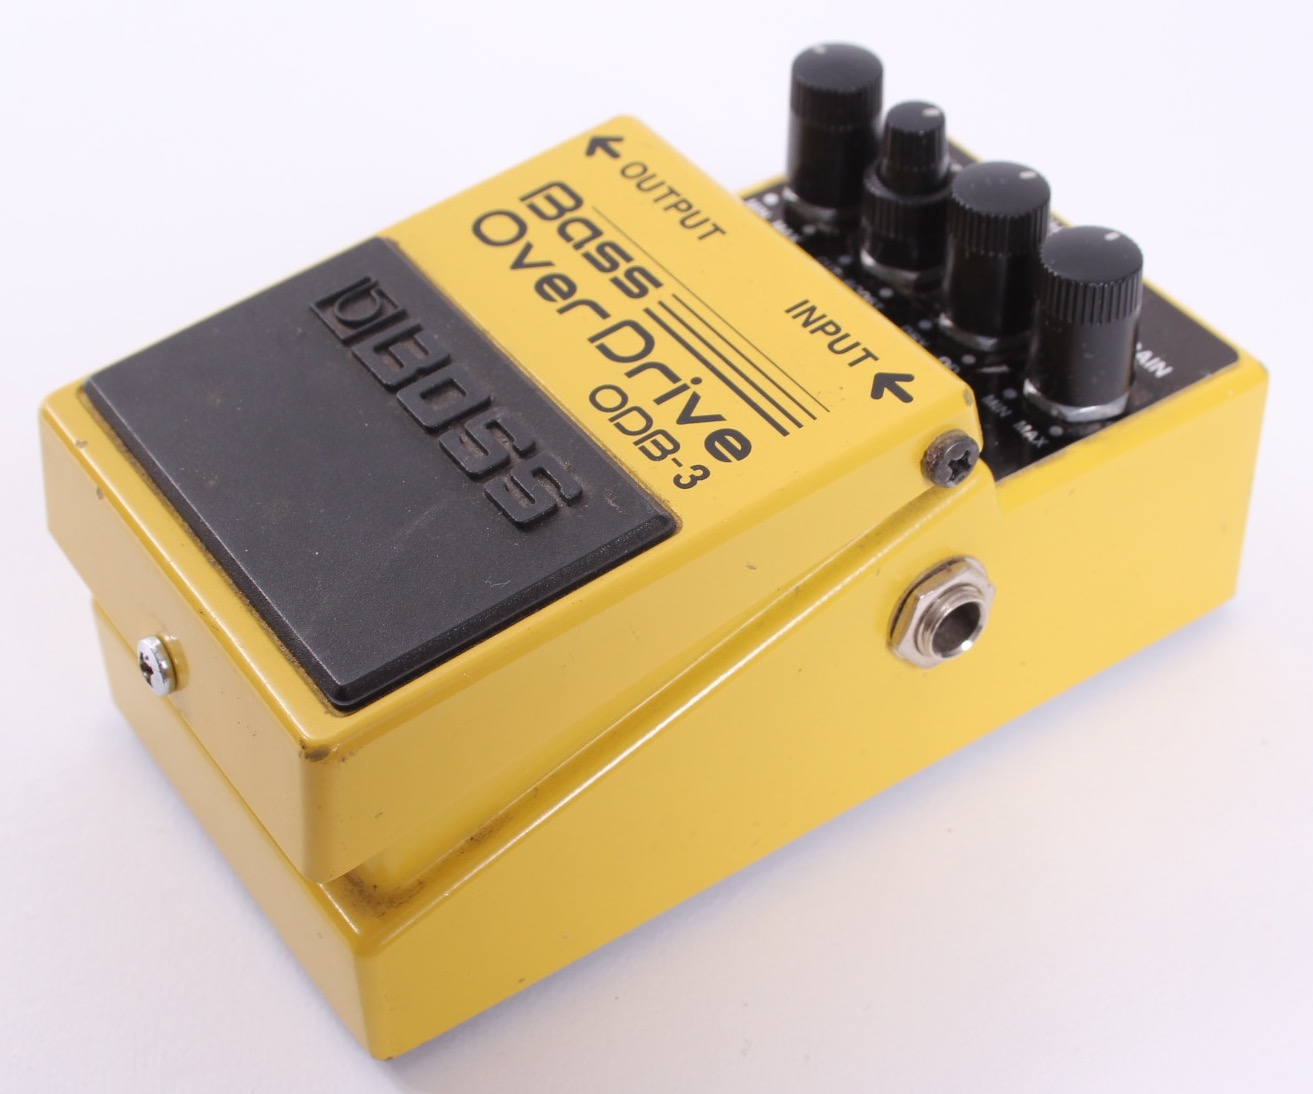 boss bass overdrive odb 3 2001 effect pedal for sale yeahman 39 s guitars. Black Bedroom Furniture Sets. Home Design Ideas